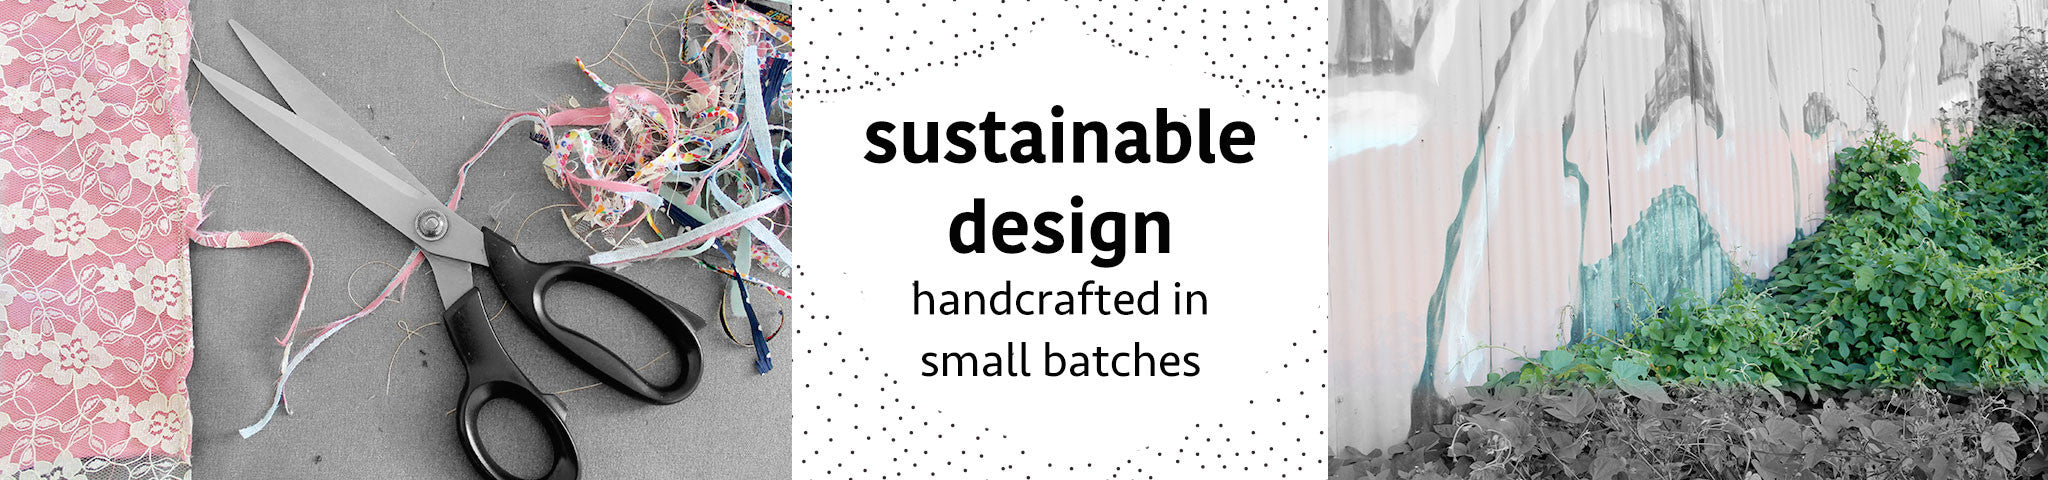 Sustainable design handcrafted in small batches